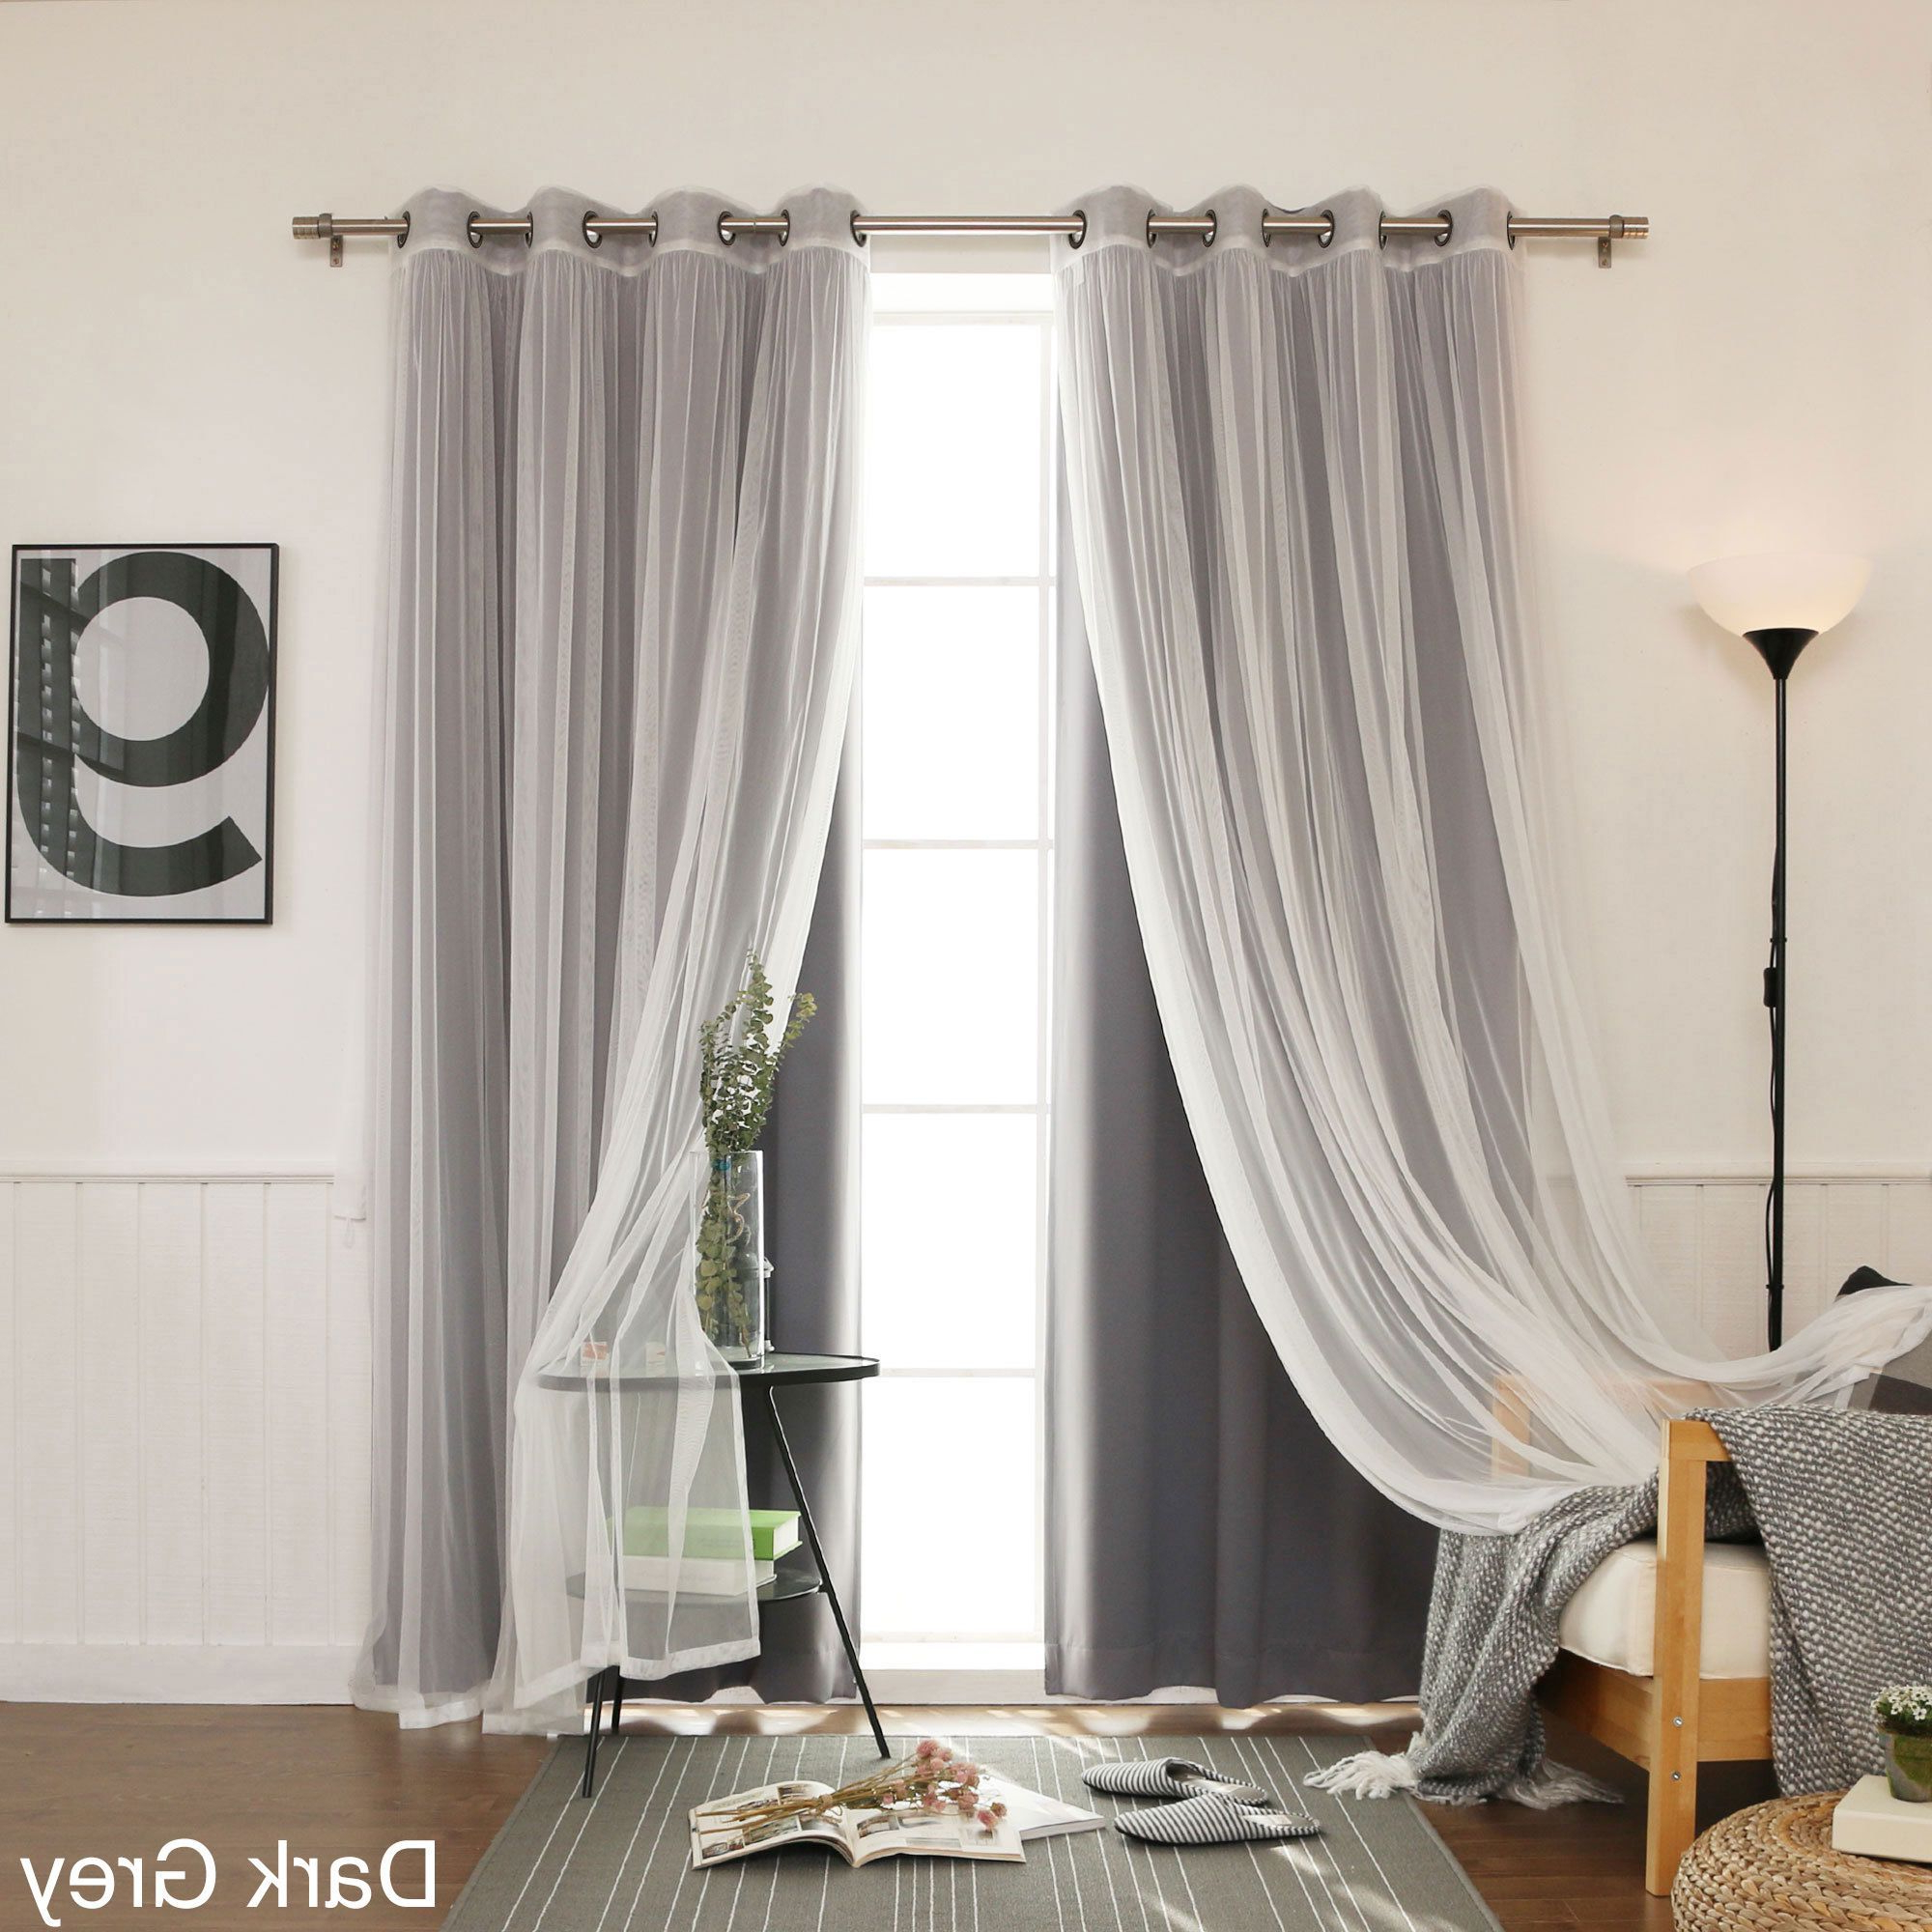 Aurora Home Mix & Match Curtains Blackout Tulle Lace Sheer With Regard To Well Known Mix And Match Blackout Tulle Lace Sheer Curtain Panel Sets (View 4 of 20)